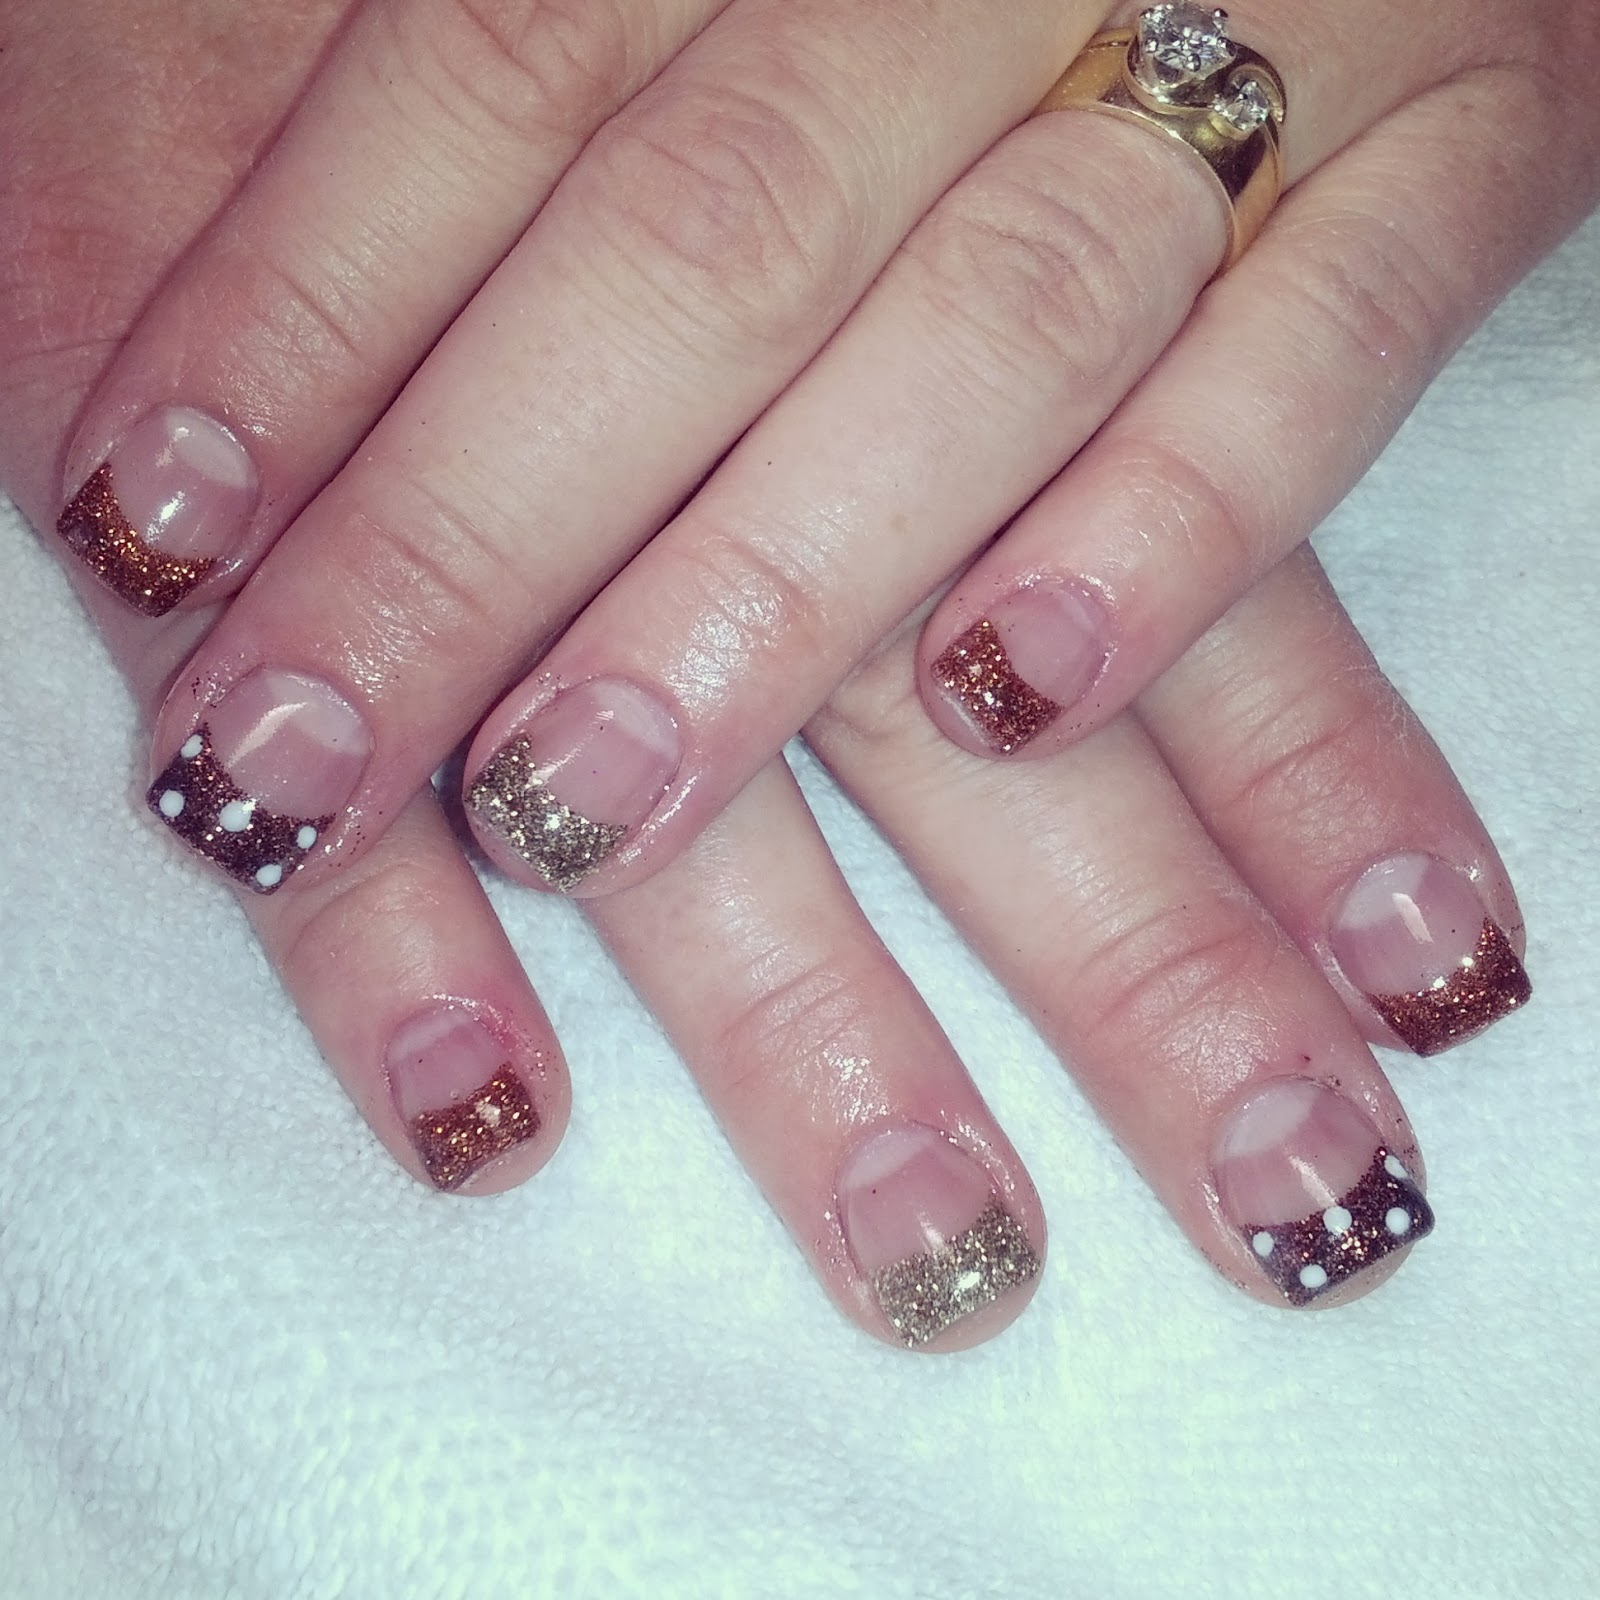 gel nails st george utah photo - 2